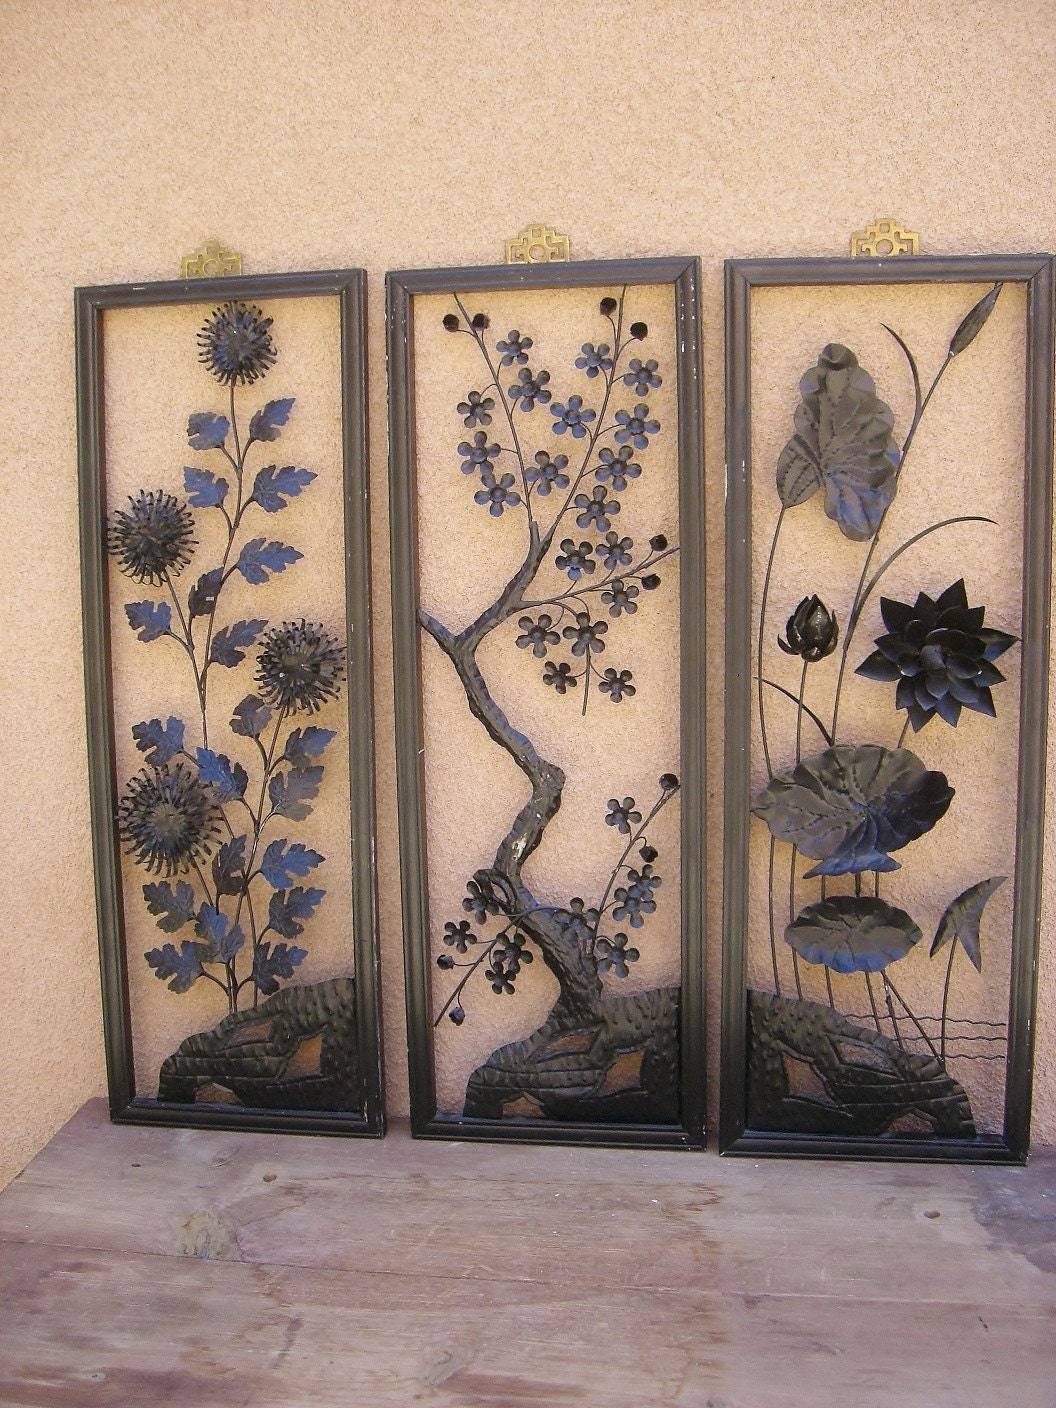 Vintage Japanese Triptych Framed Cut Metal Wall Art